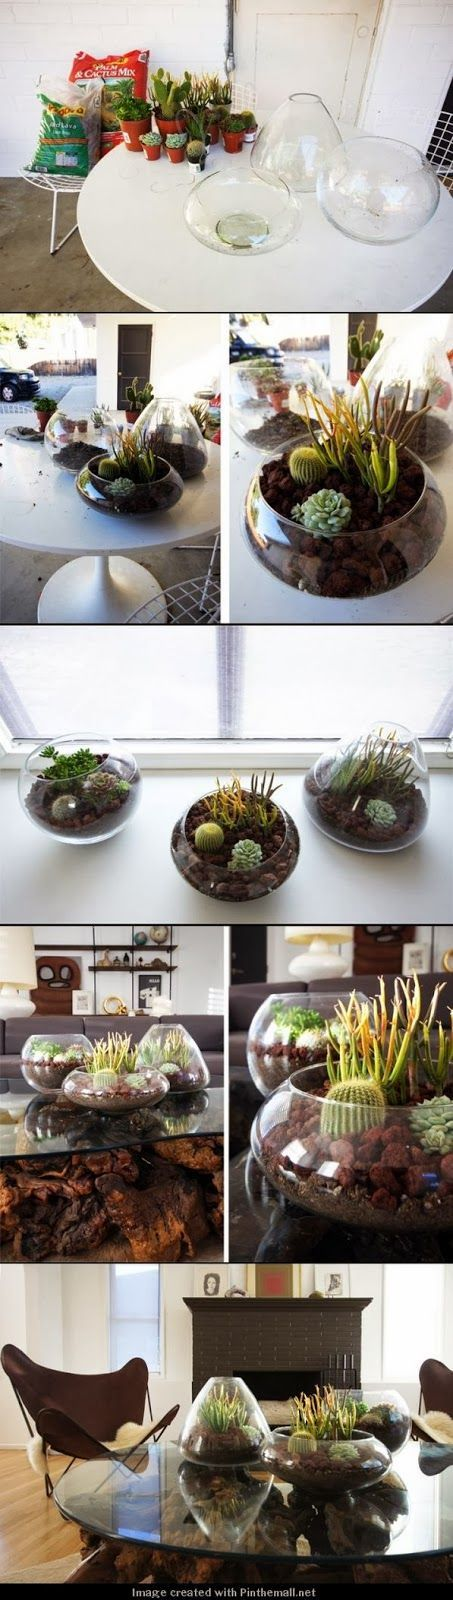 diy terrarium dekoideen terrarium pflanzen terrarium und pflanzen f r innen. Black Bedroom Furniture Sets. Home Design Ideas